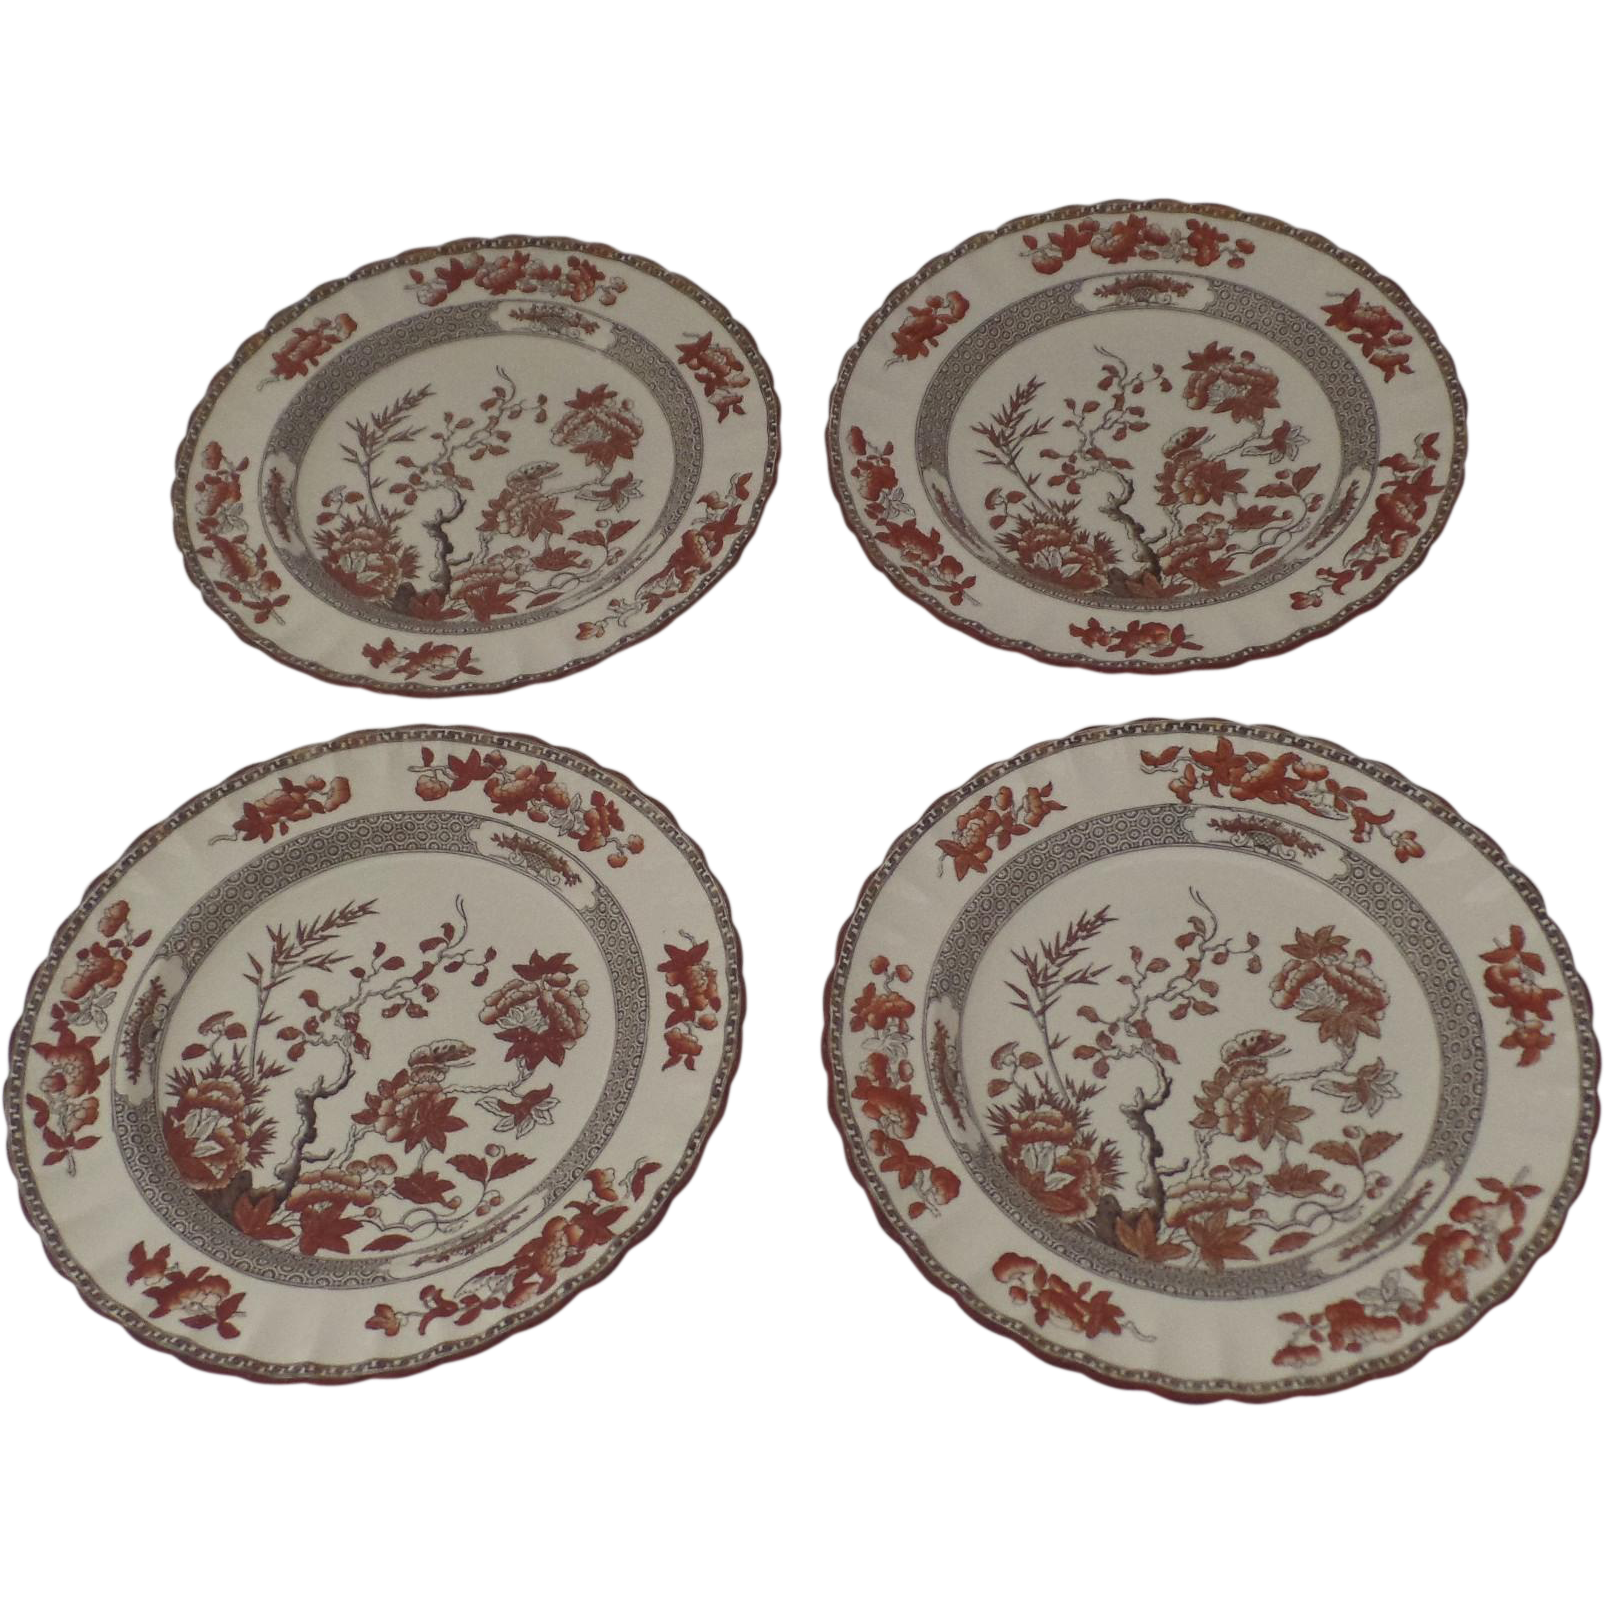 4 X Vintage Spode India Indian Tree Rust Plates Dinner From Black